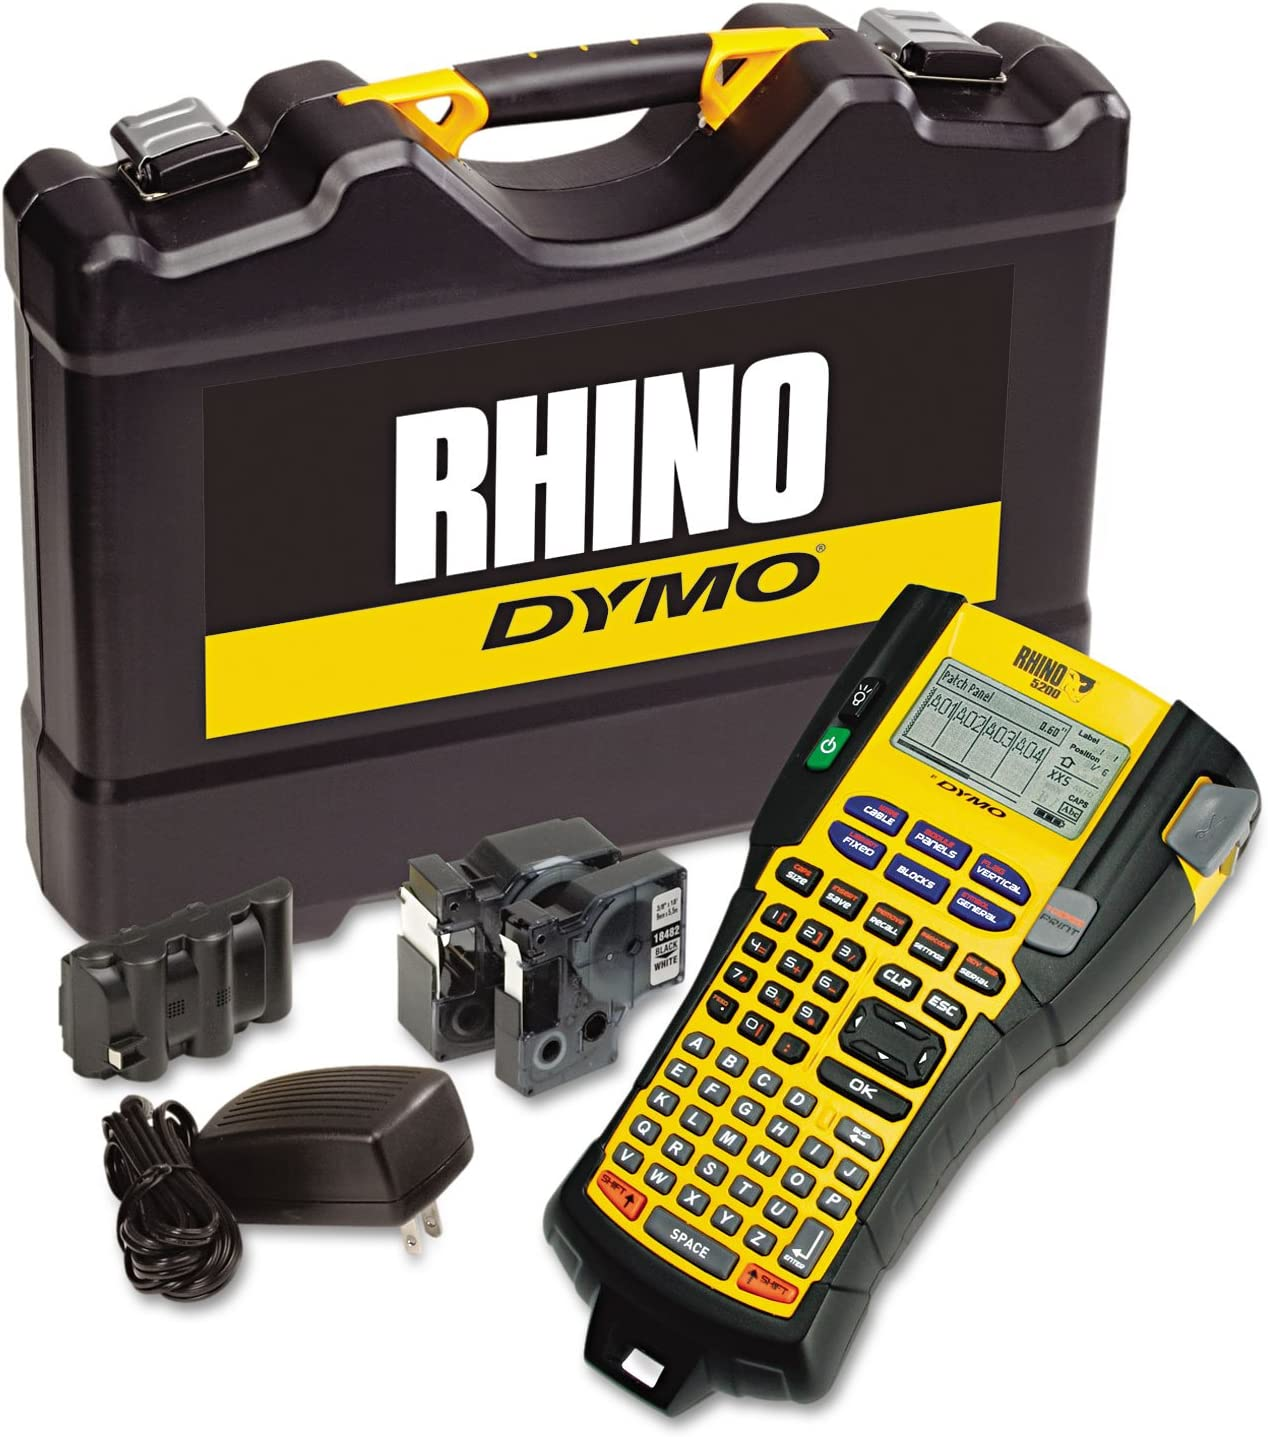 DYMO Max 86% OFF 1756589 Rhino 5200 Industrial Label Kit 4 Maker Lines OFFicial 9 5